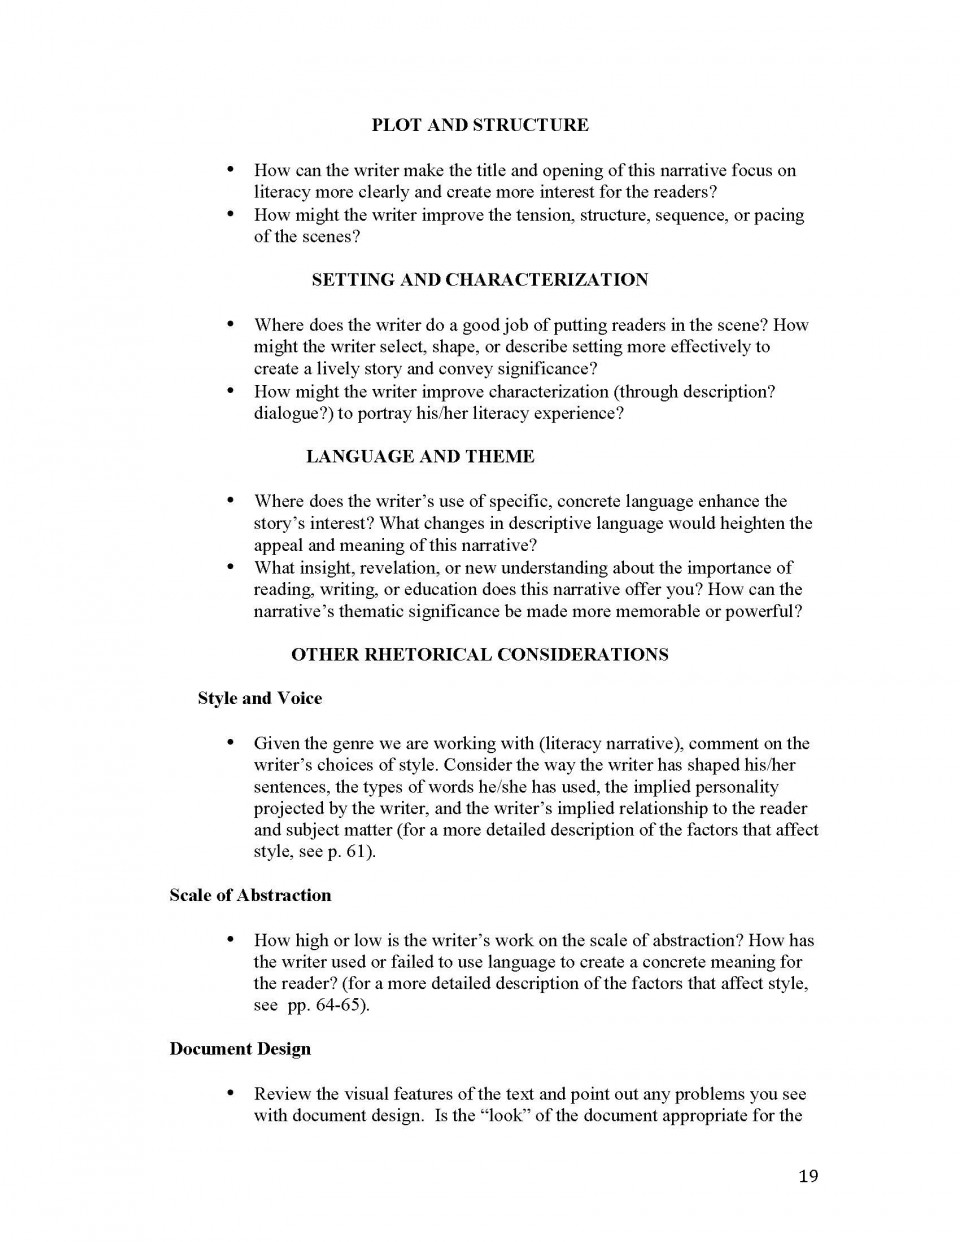 018 Unit 1 Literacy Instructor Copy Page 19 Essay Example Writing Amazing A Narrative About Being Judged Quizlet Powerpoint 960